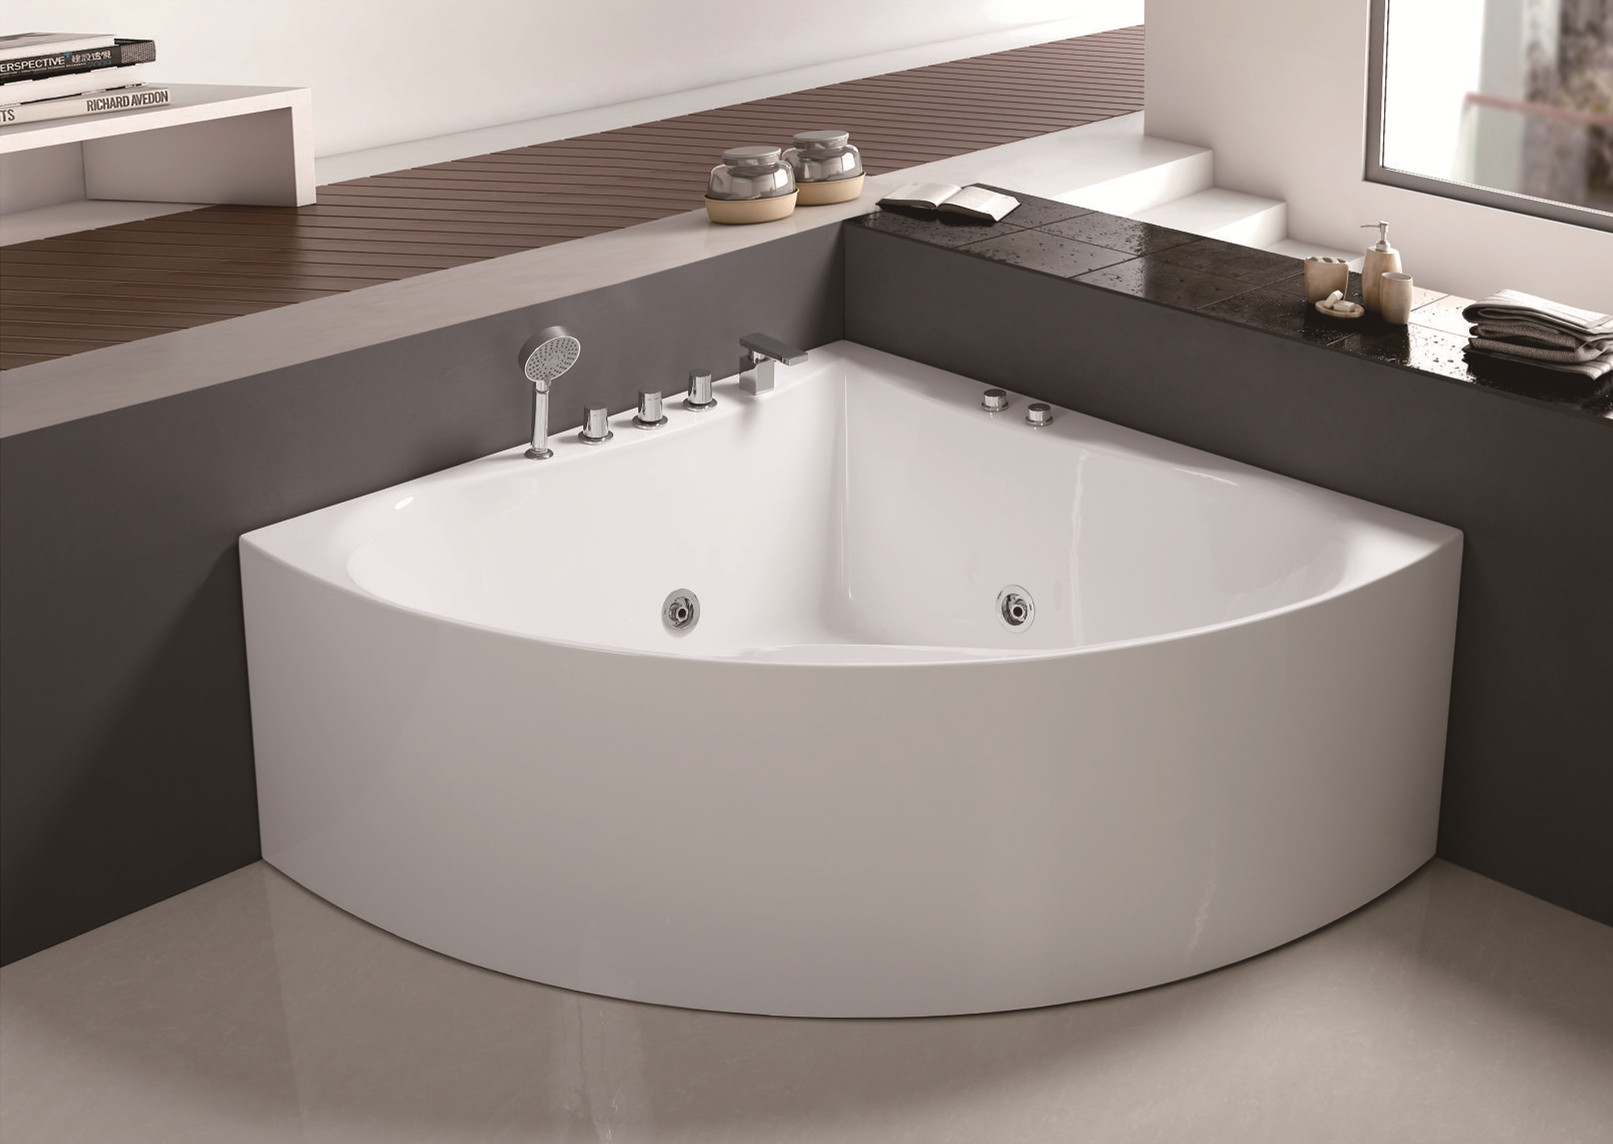 C-413 Smooth Acrylic  Modern Simple  Hot Sale Tub Whirlpool Bathroom Bathtub with Cheap Price.jpg